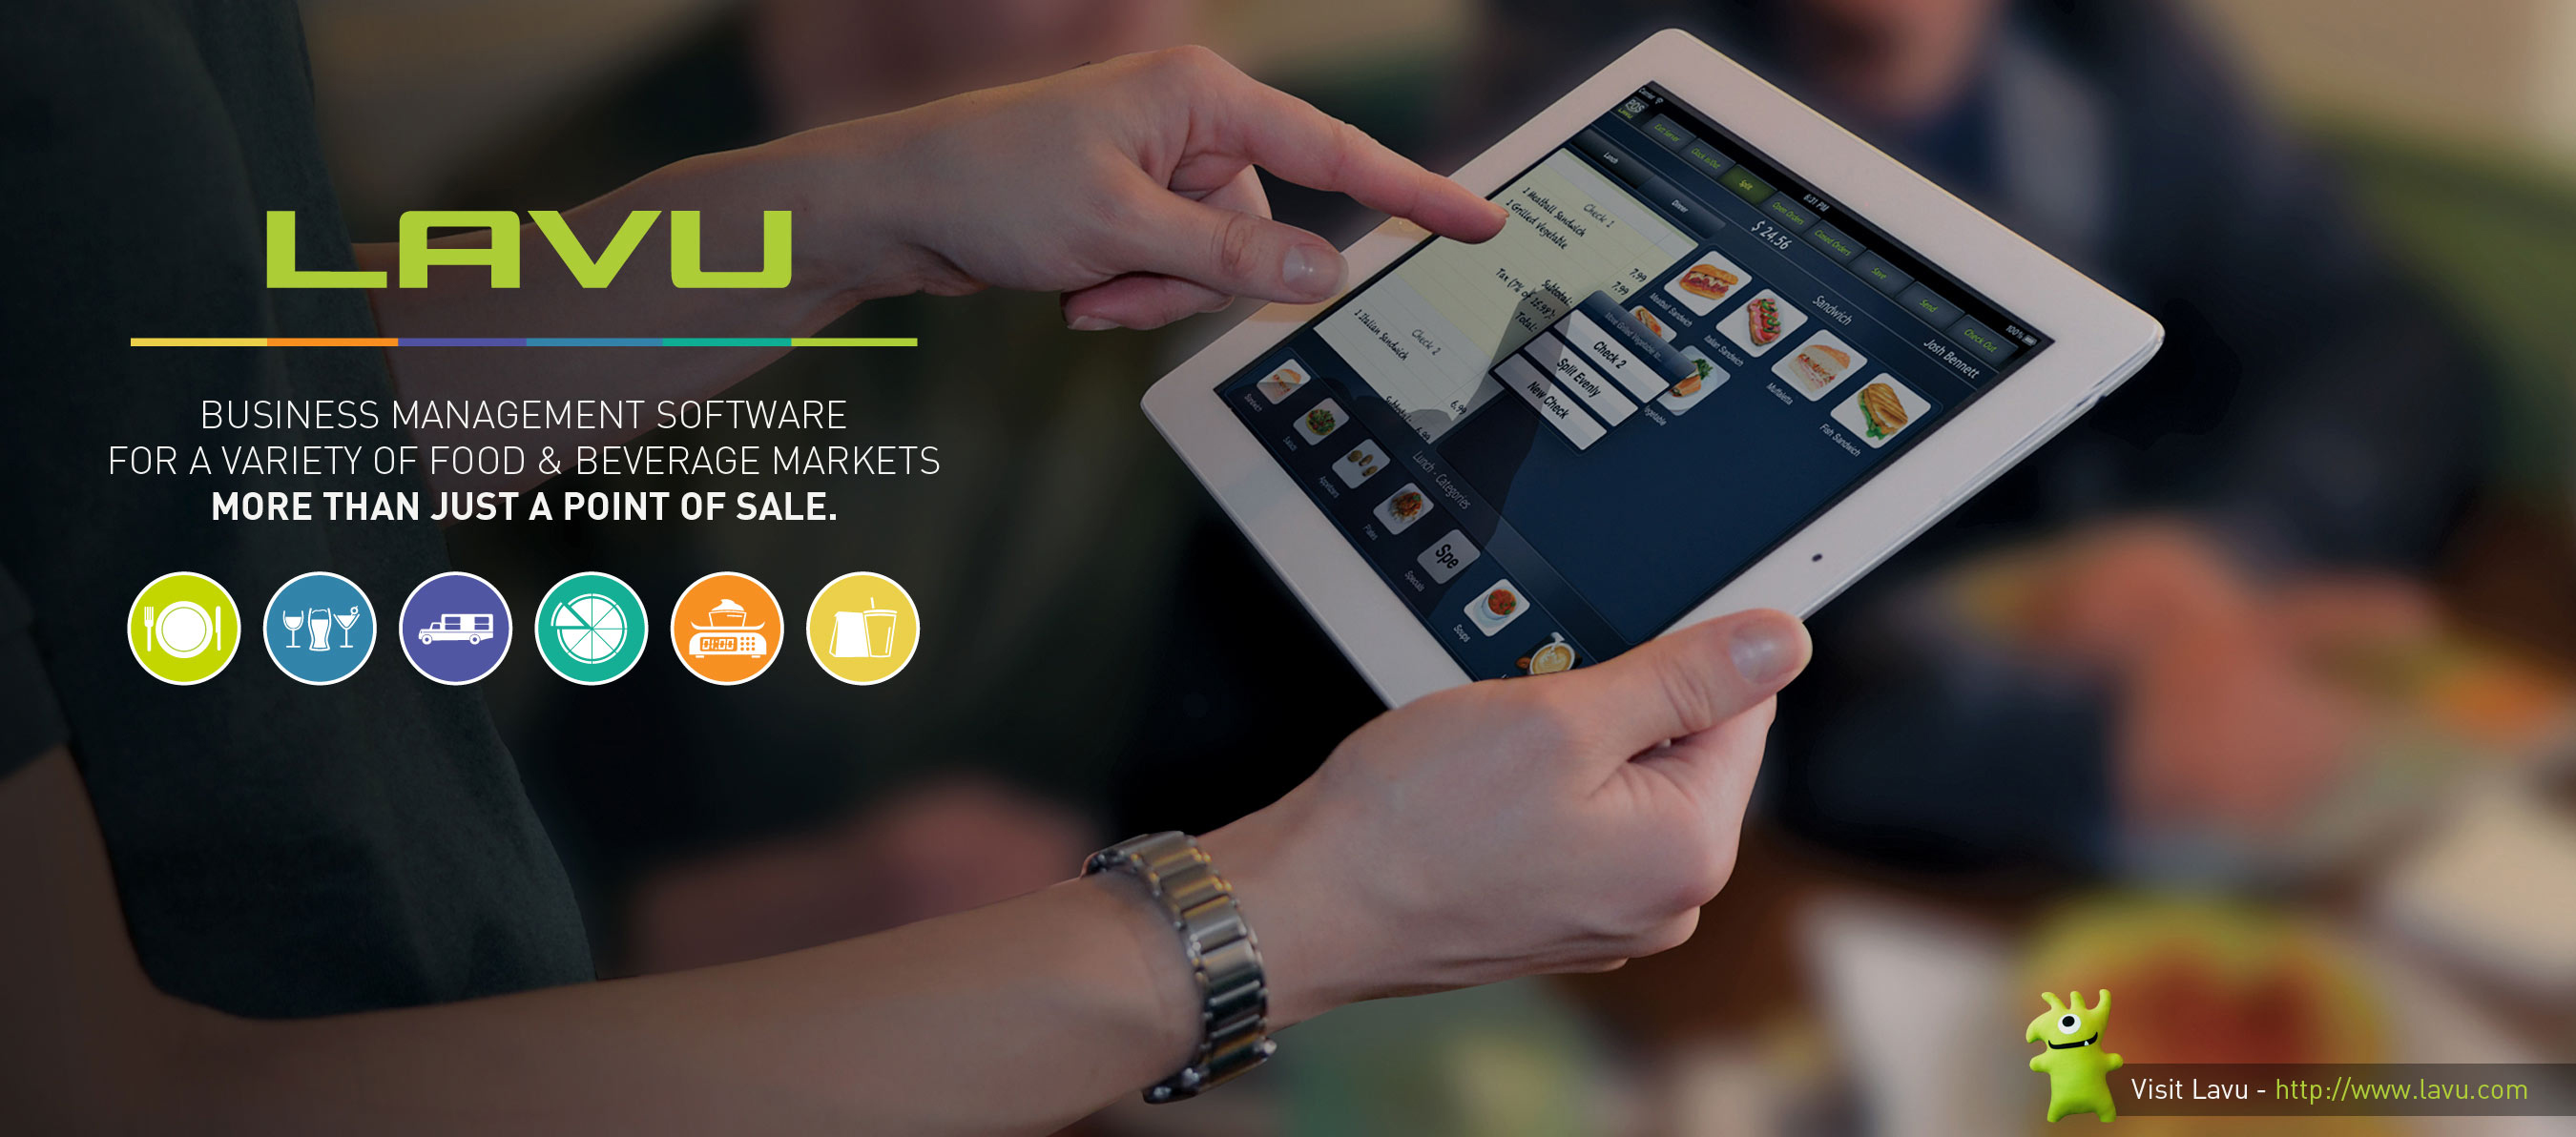 Lavu Gives Their Ipad Point Of Sale Software To